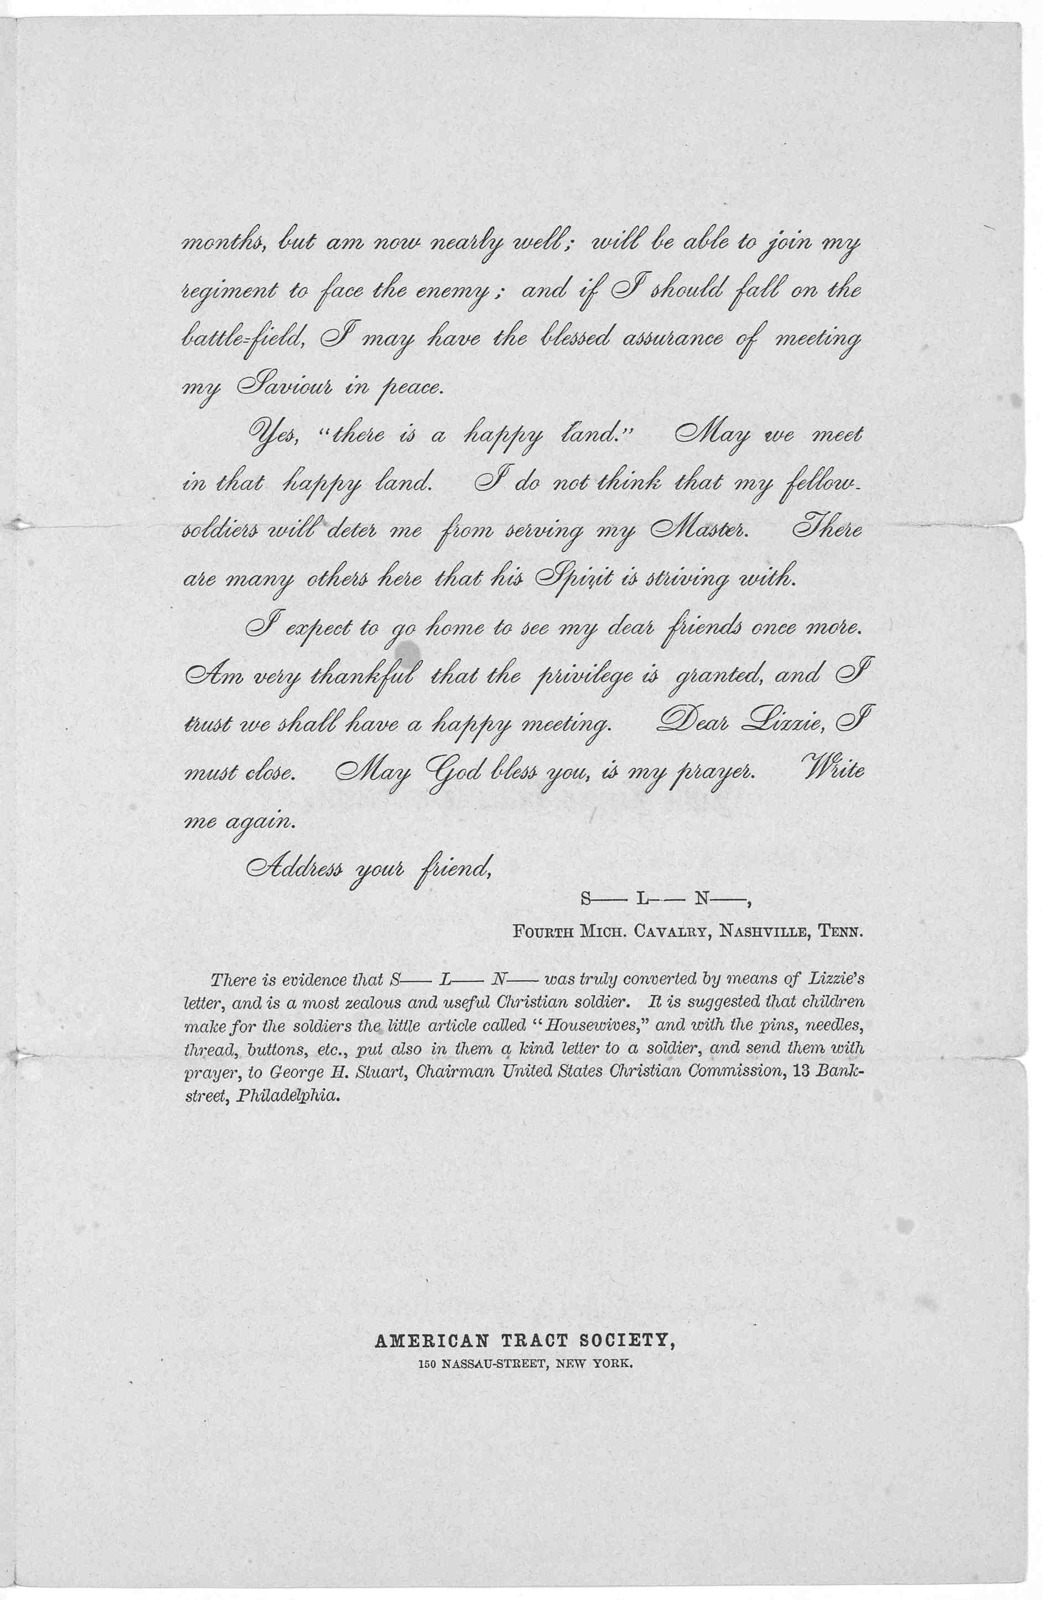 Little Lizzie's letter. Philadelphia, April 17, 1863. My dear soldier: I send you a little Testament. I am a little girl seven years old ... Lizzie S ... New York American tract society, 150 Nassau Street 1863.